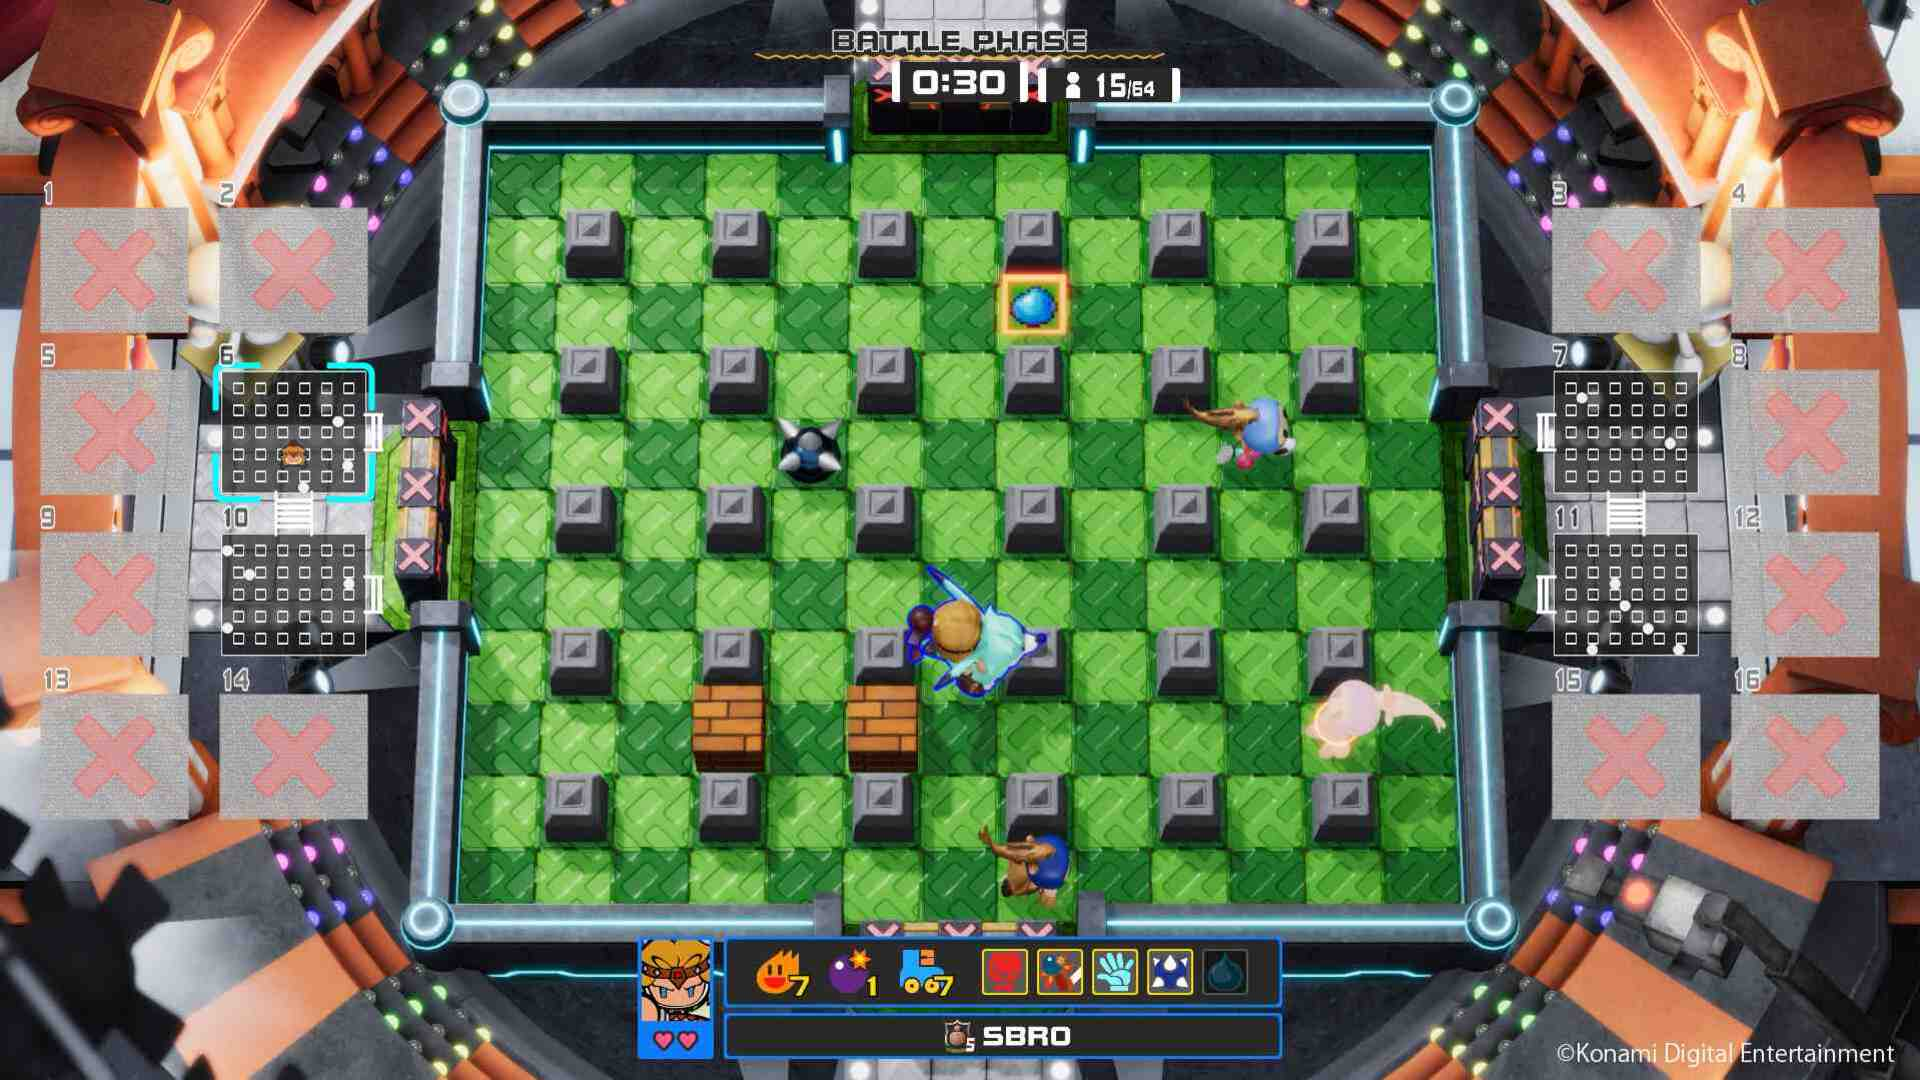 Super Bomberman R Online Brings Bomberman Battle Royale to Stadia, Where No One Will Hear the Boom